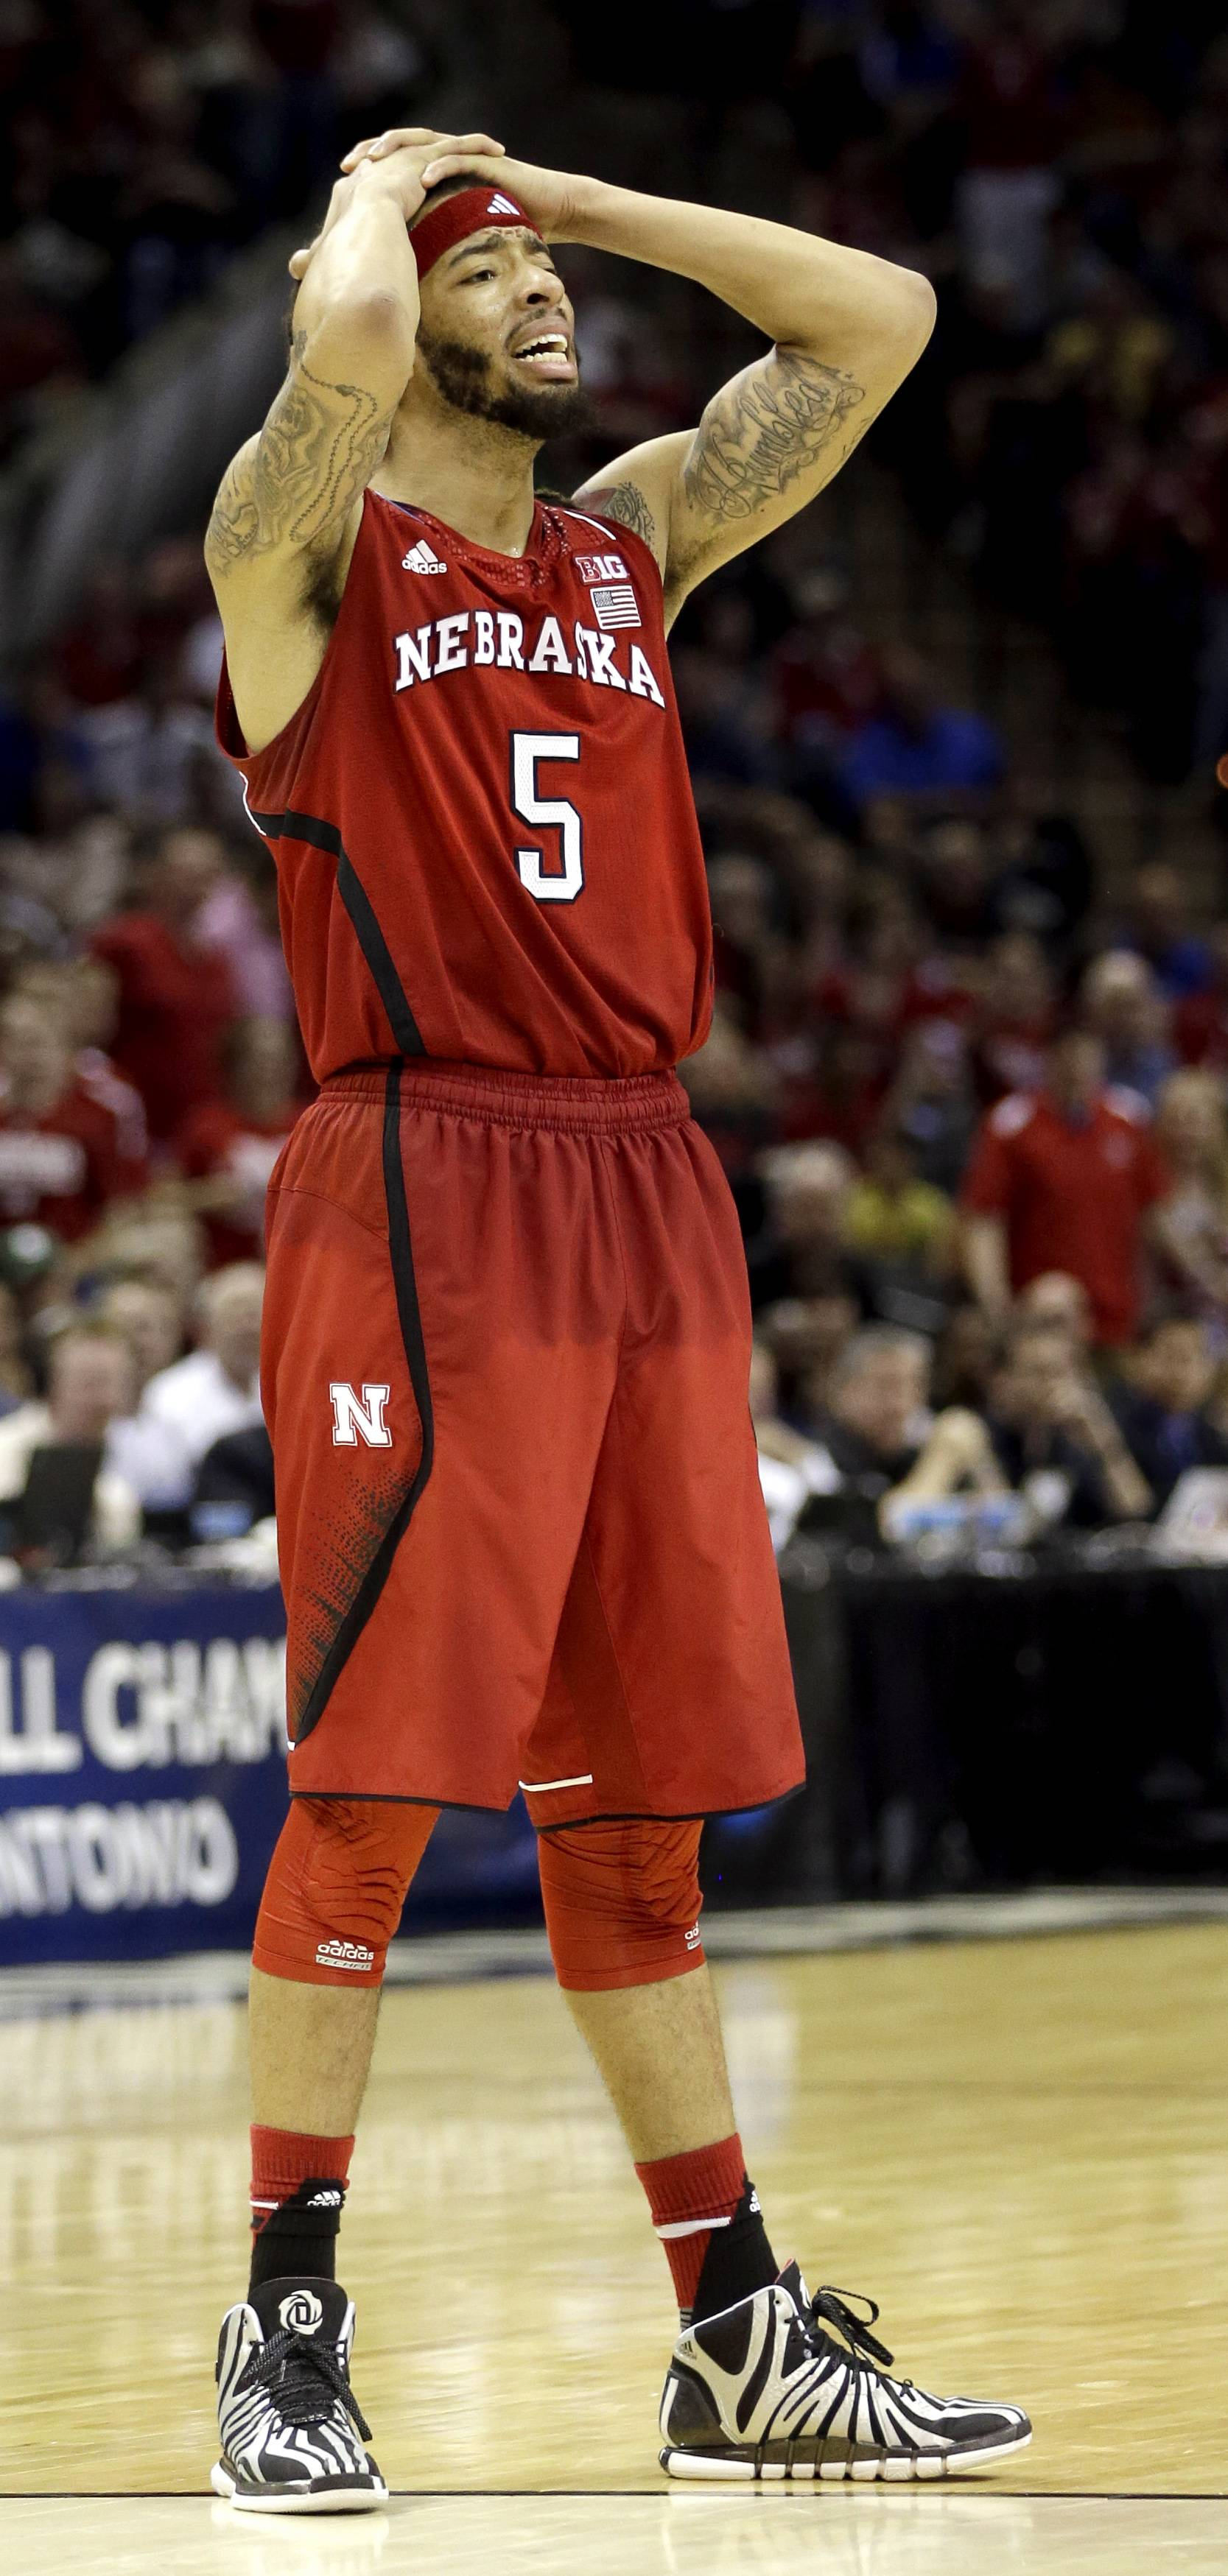 Nebraska's Terran Petteway (5) reacts after a foul call during the second half of a second-round game against Baylor in the NCAA college basketball tournament Friday, March 21, 2014, in San Antonio. Baylor won 74-60. (AP Photo/David J. Phillip)